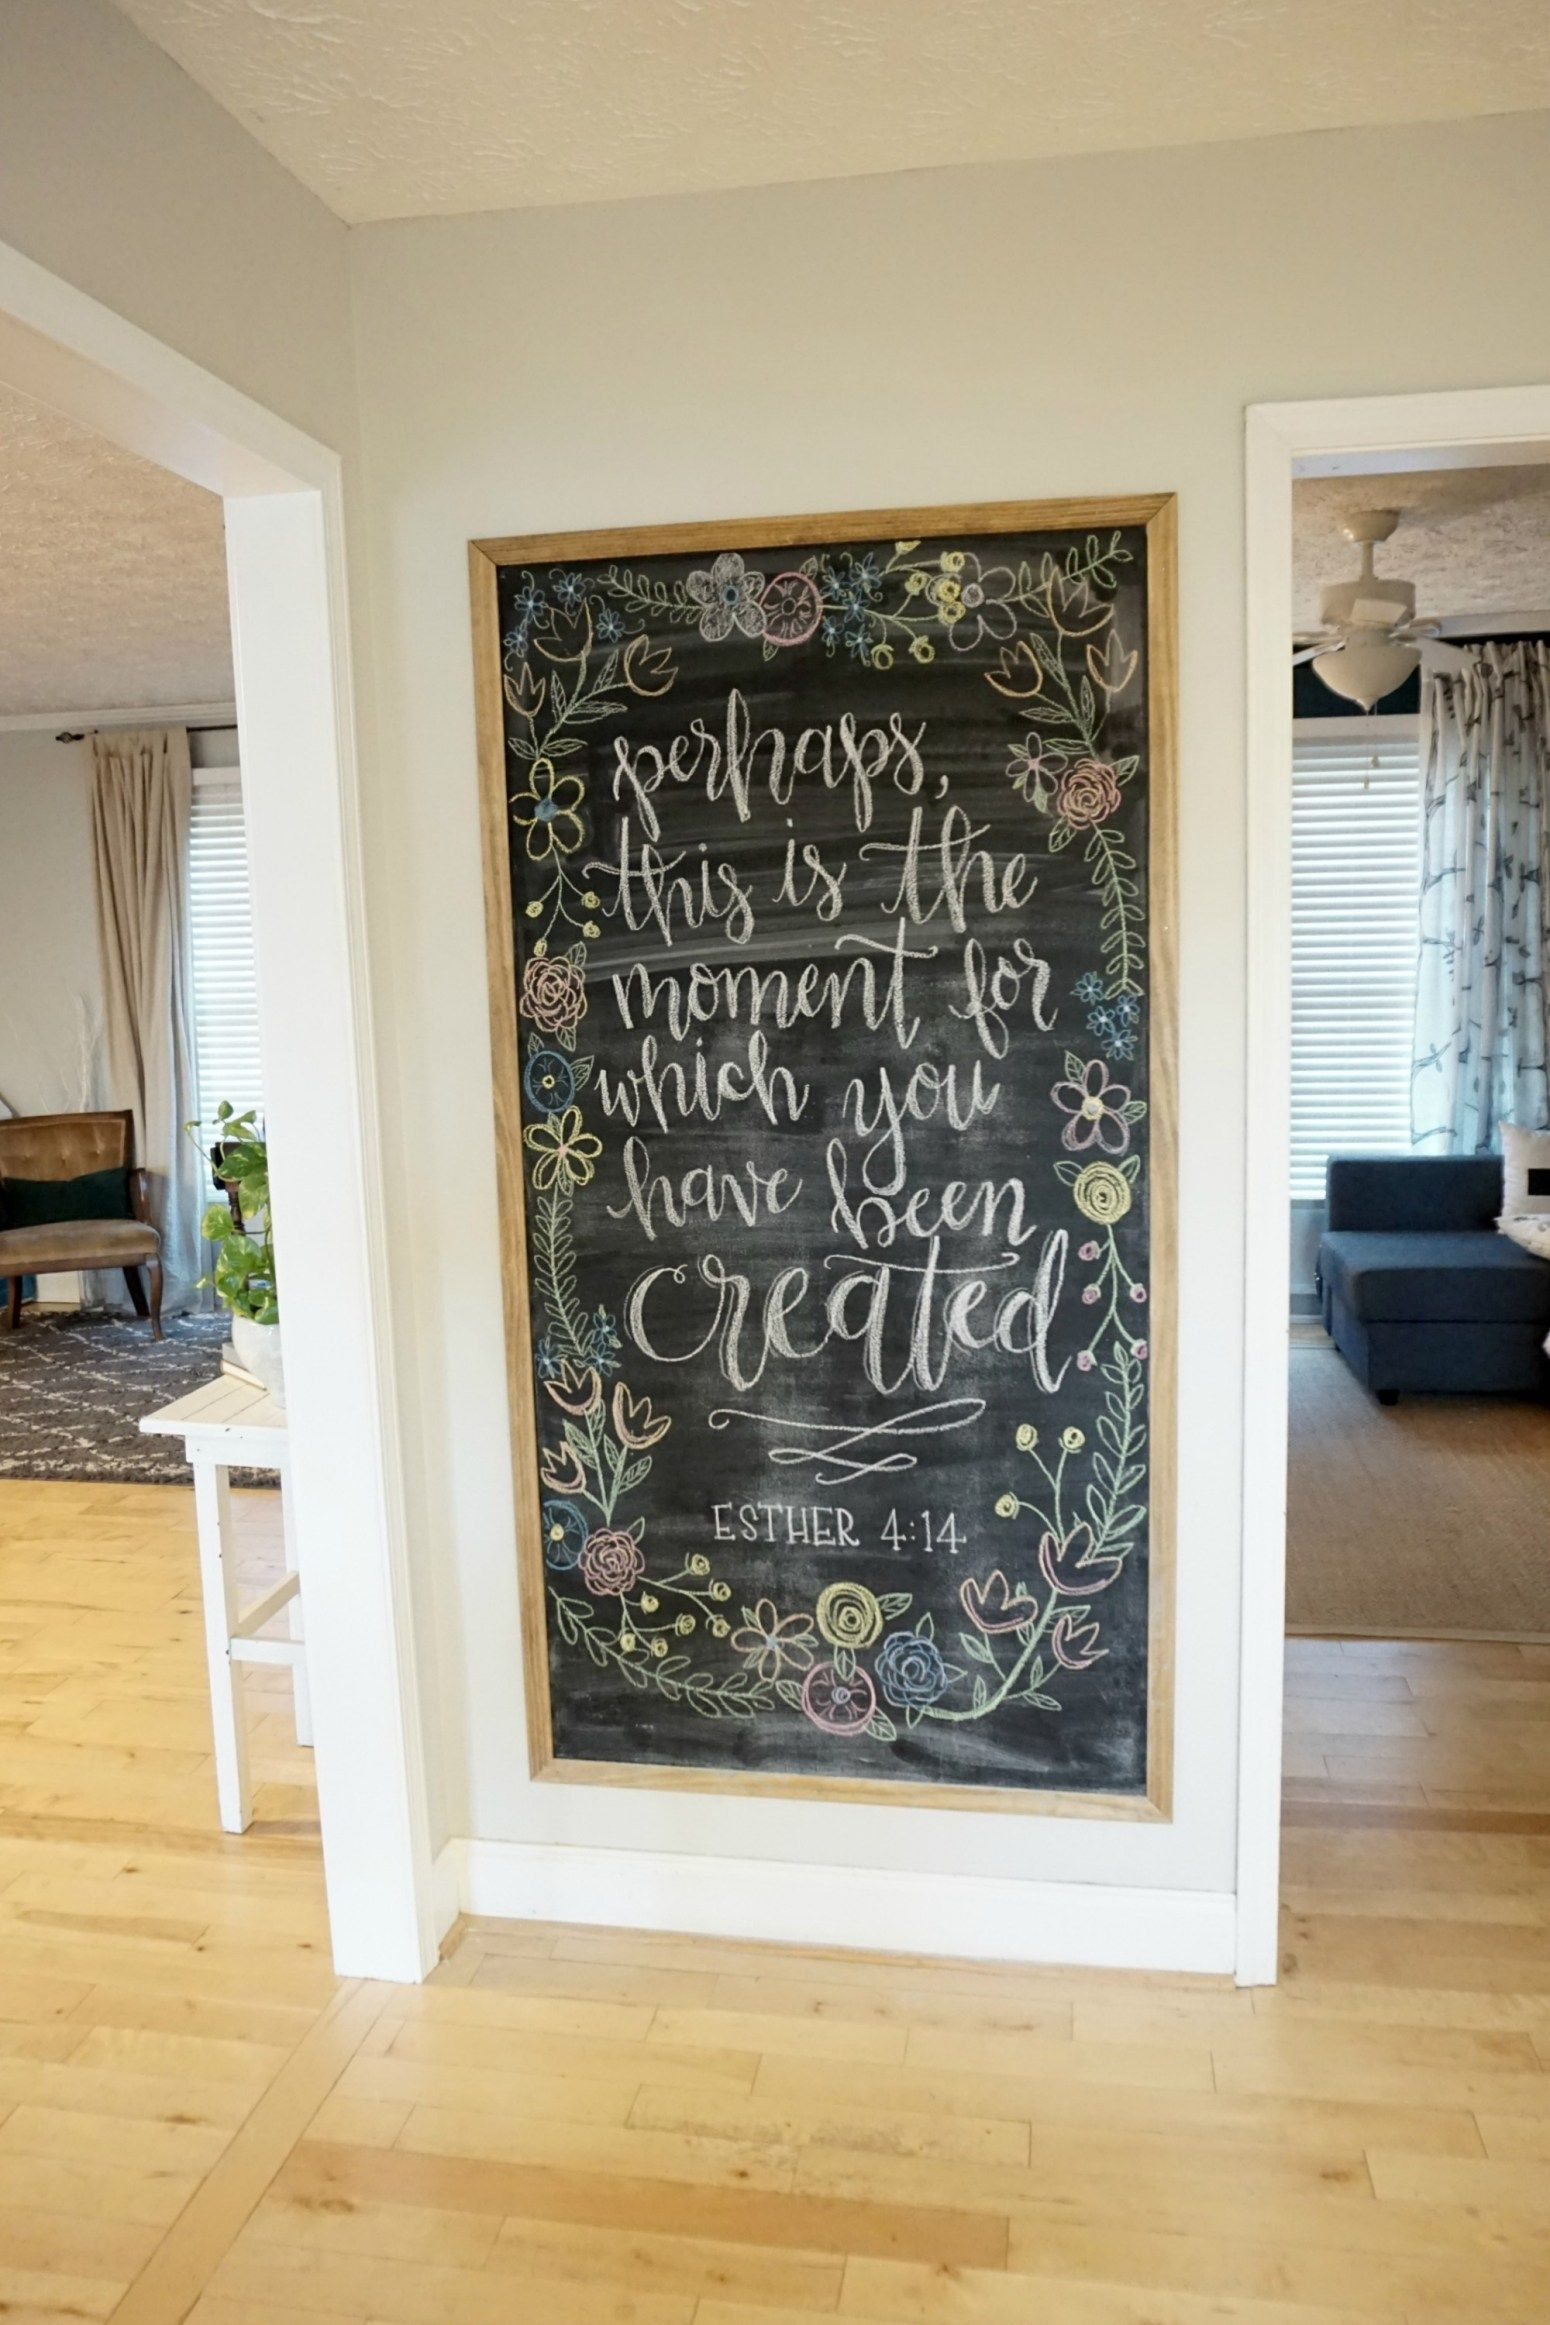 How To Decorate A Large Bedroom Wall 12 Affordable Ideas For Large Wall Decor Chalkboard